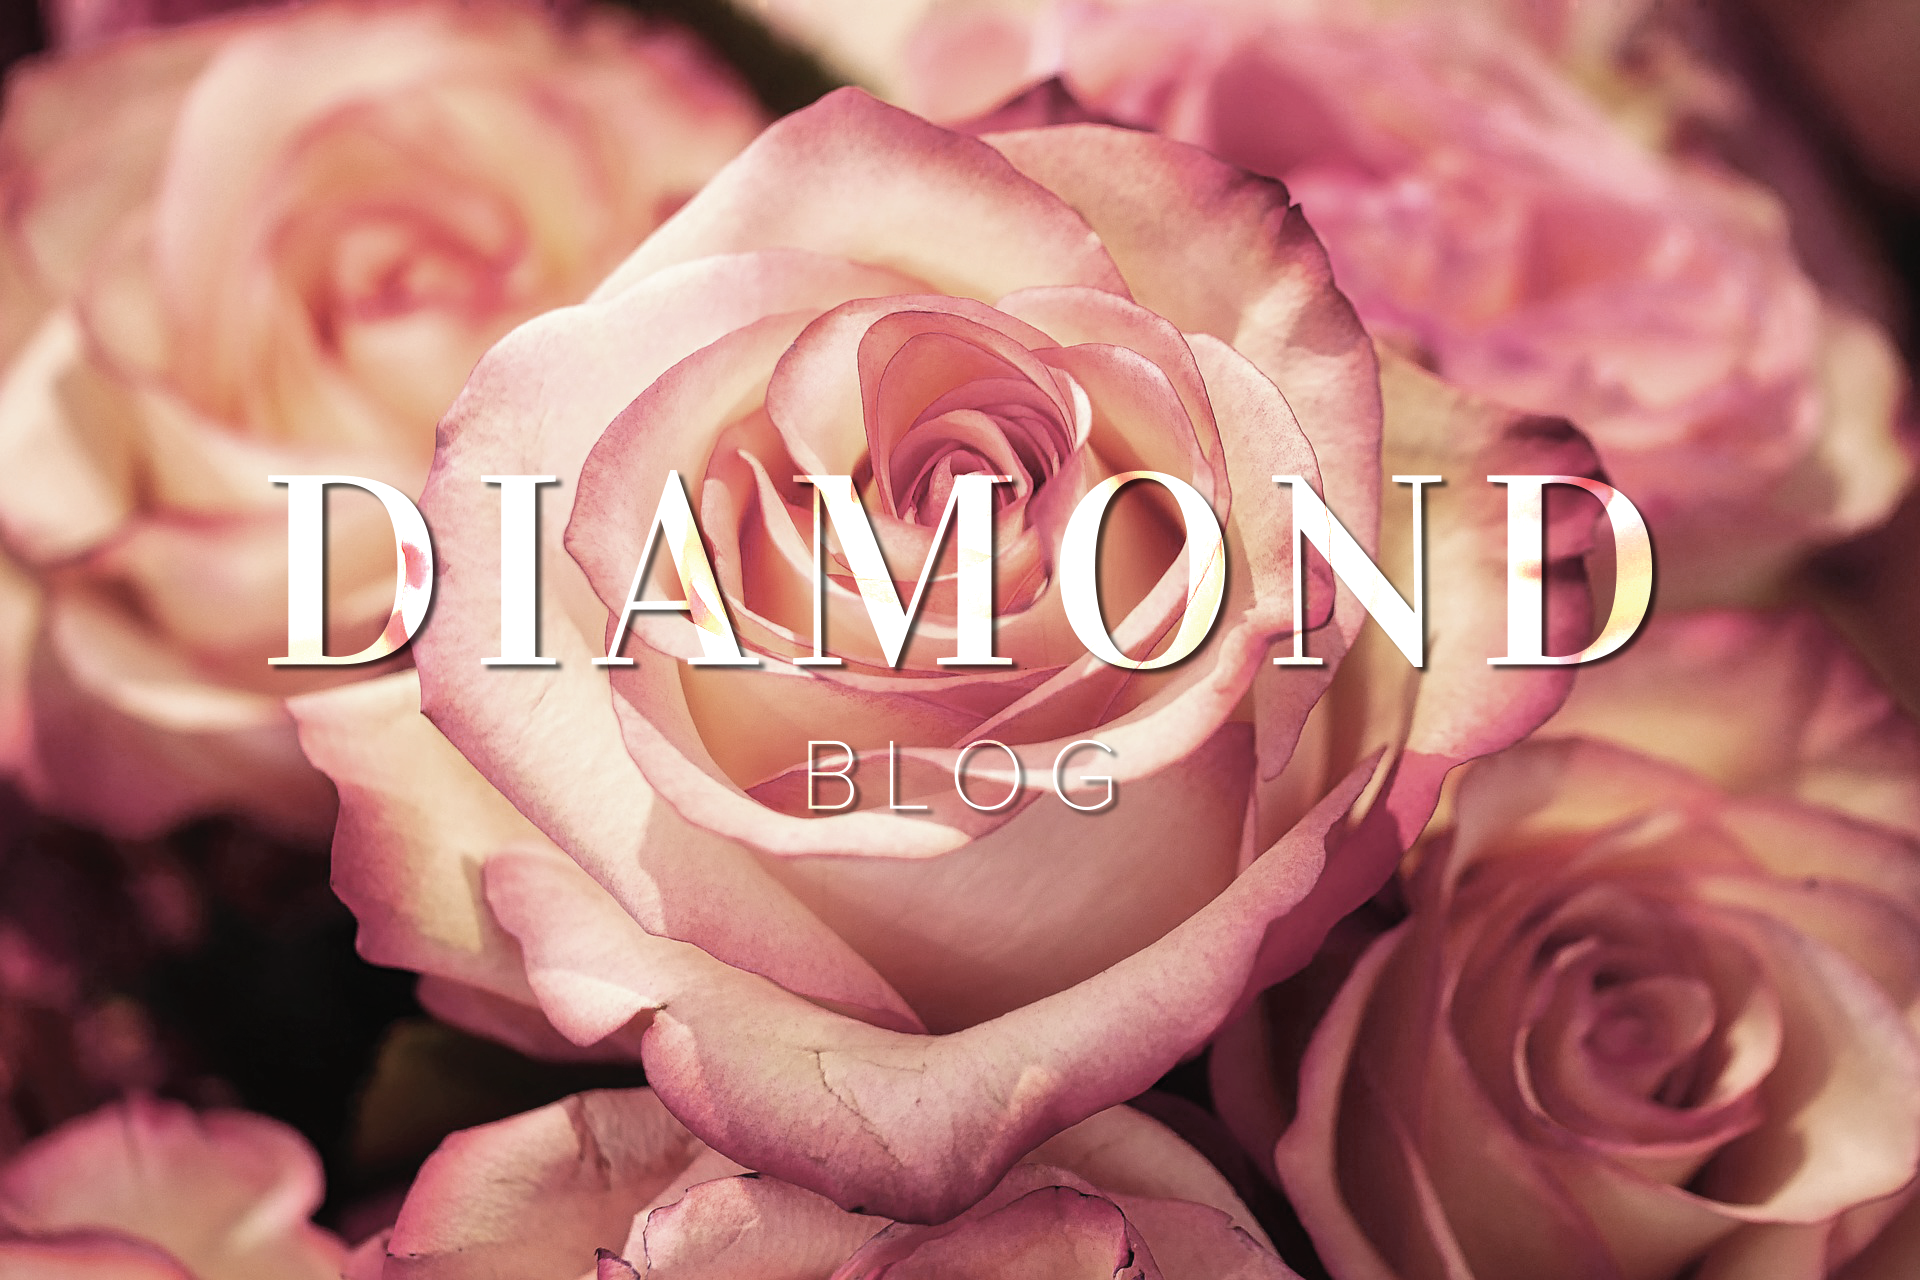 diamond blog-01.png